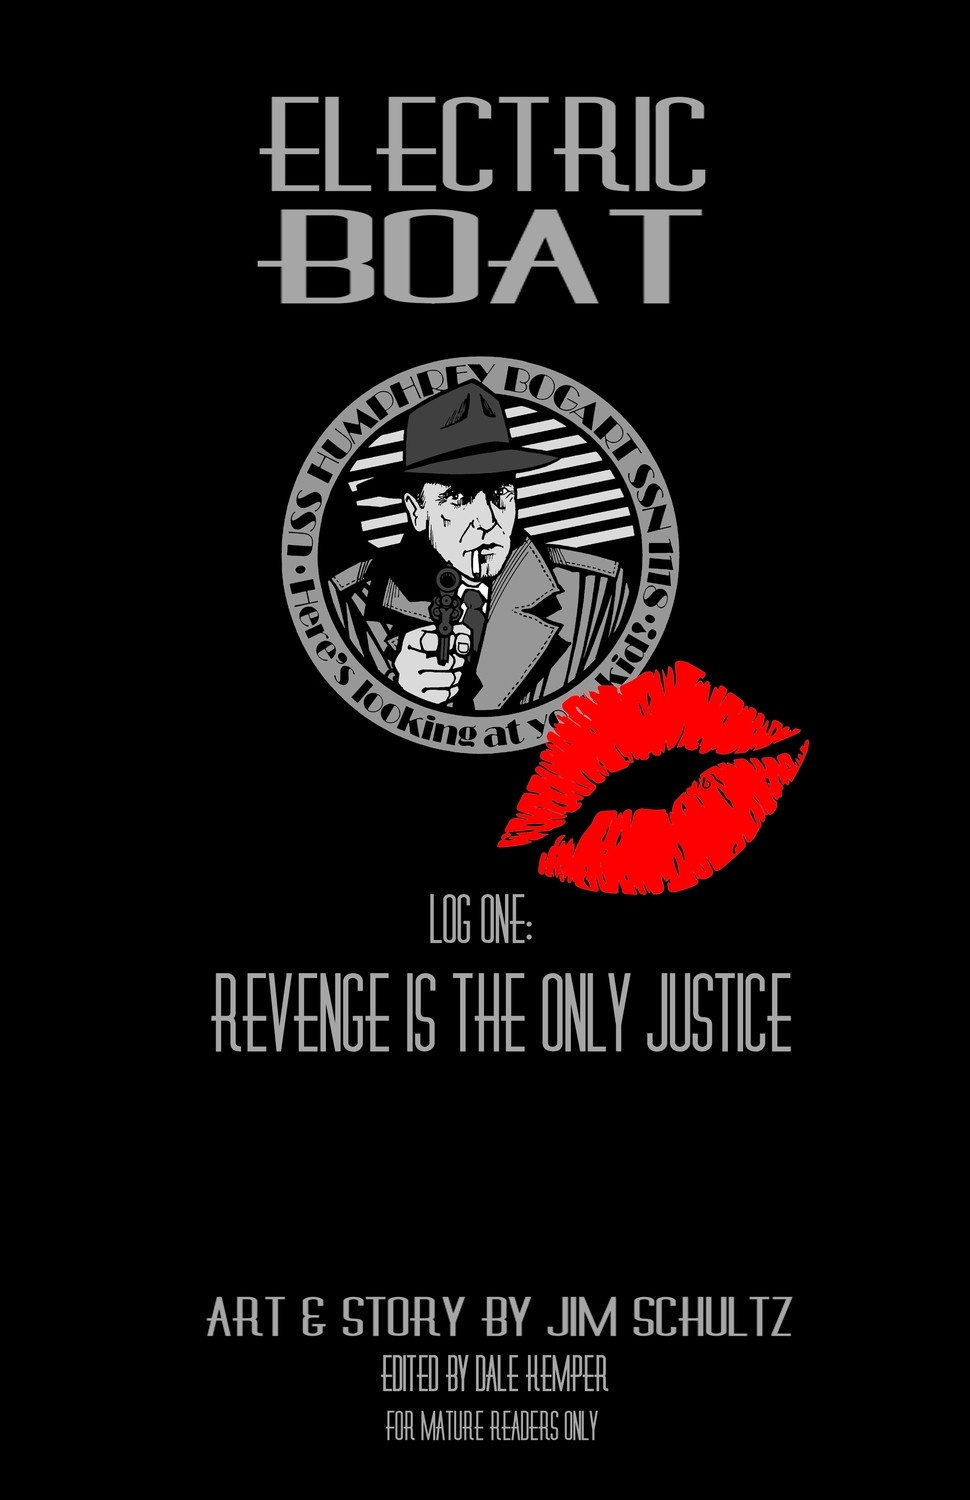 Electric Boat Log One: Revenge is the Only Justice